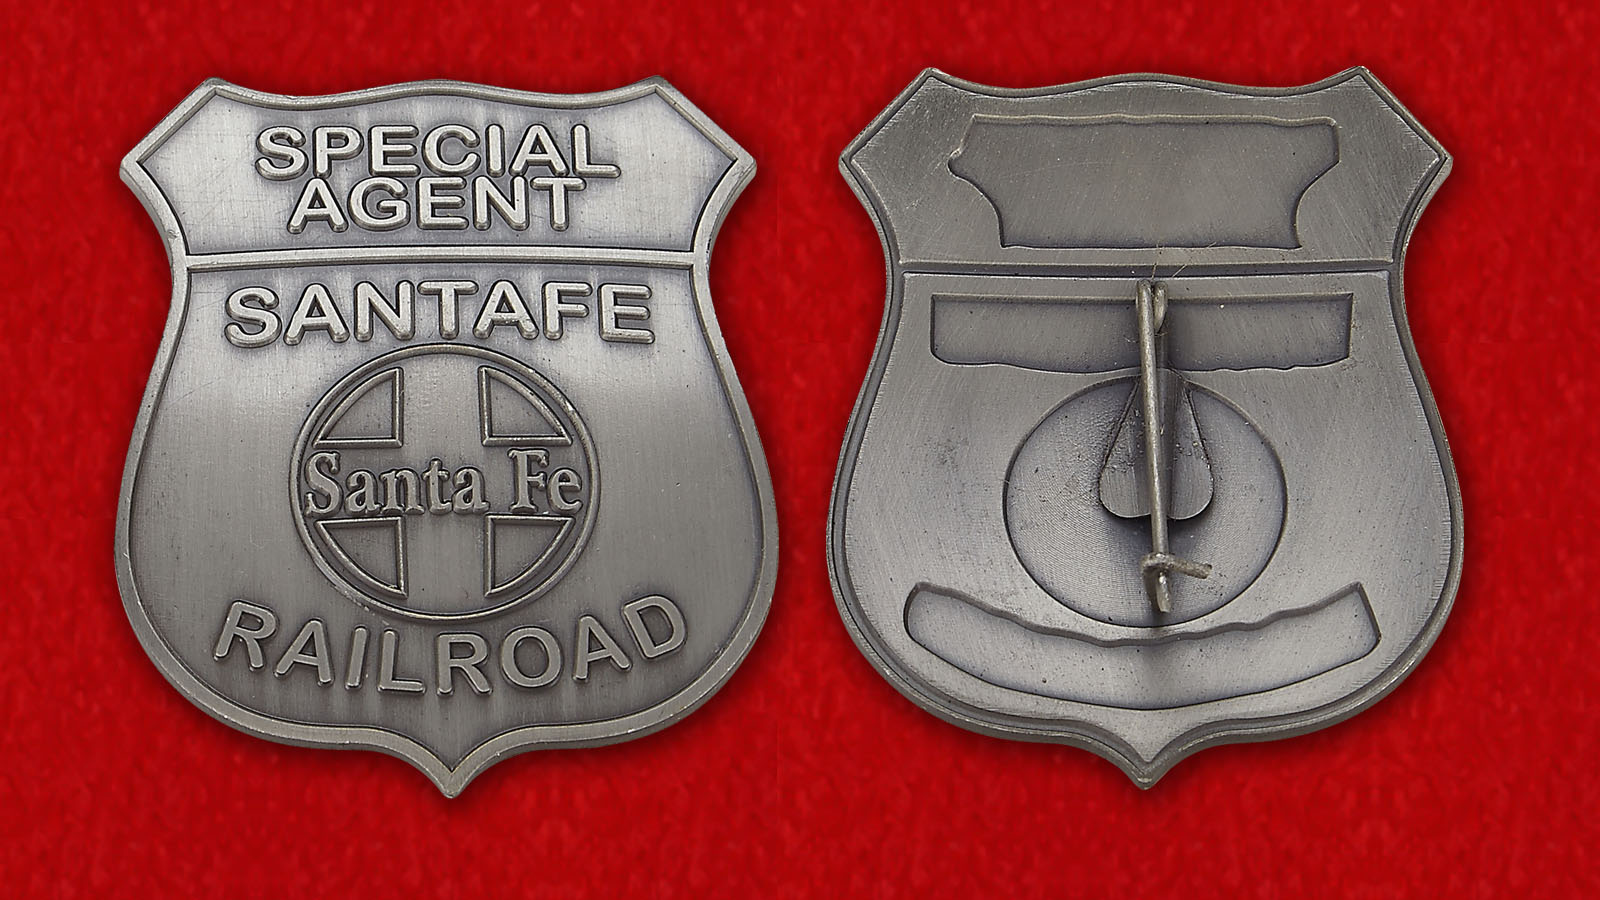 Special Agent Raulroad Sata Fe Token - obverse and reverse